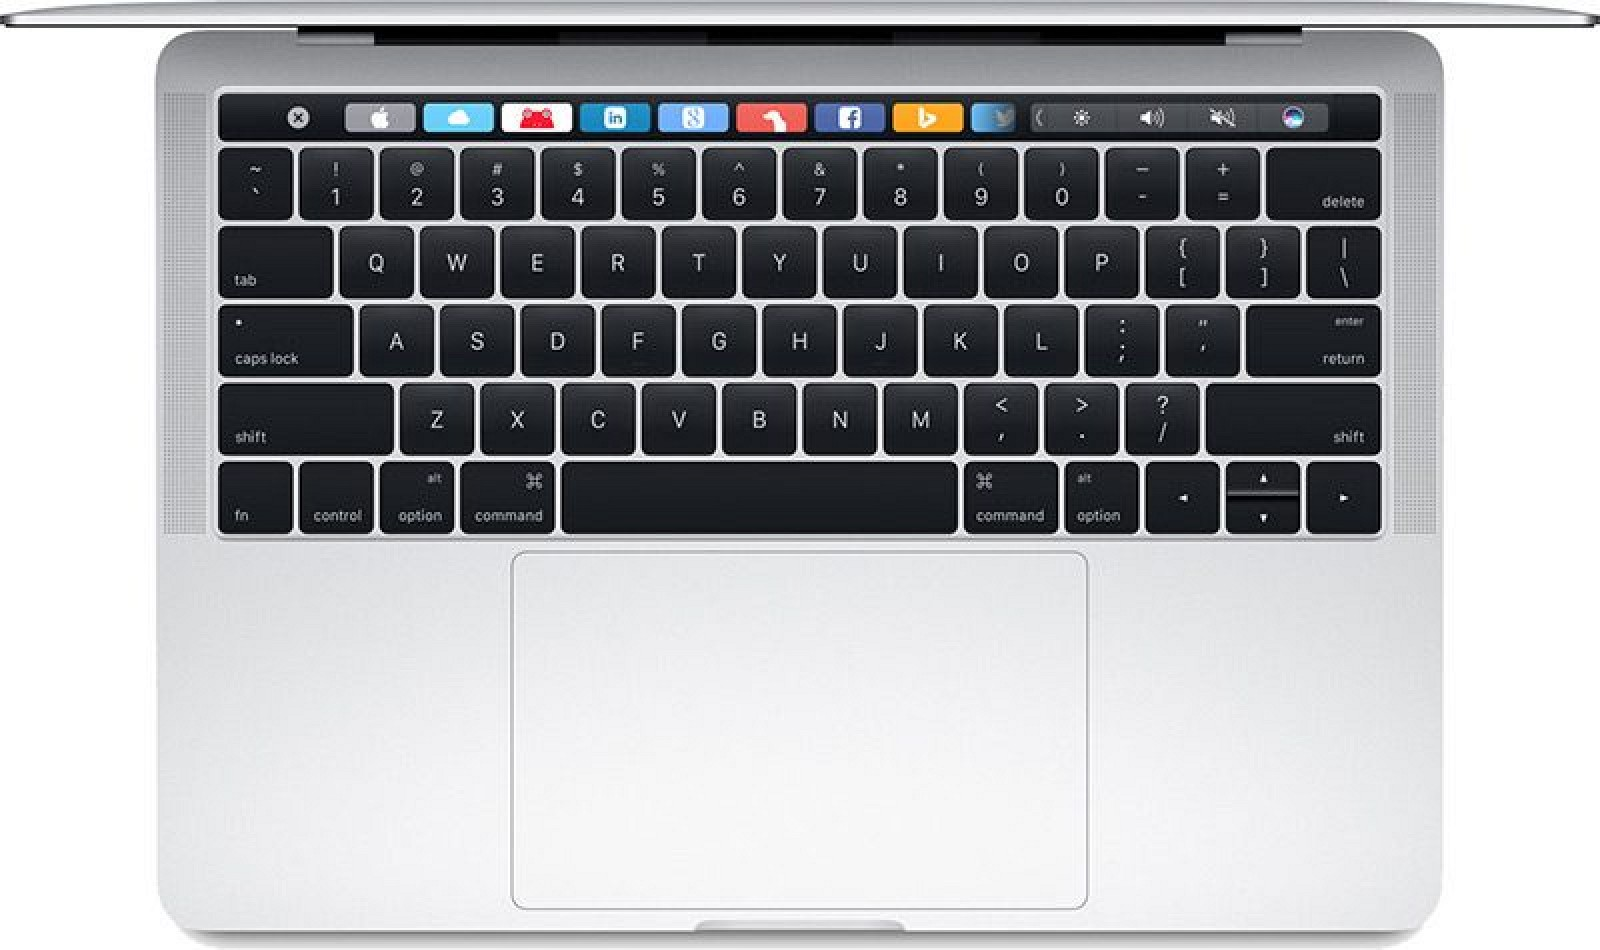 Additional Details About Apple's New MacBook and MacBook Pro Keyboard Service Program